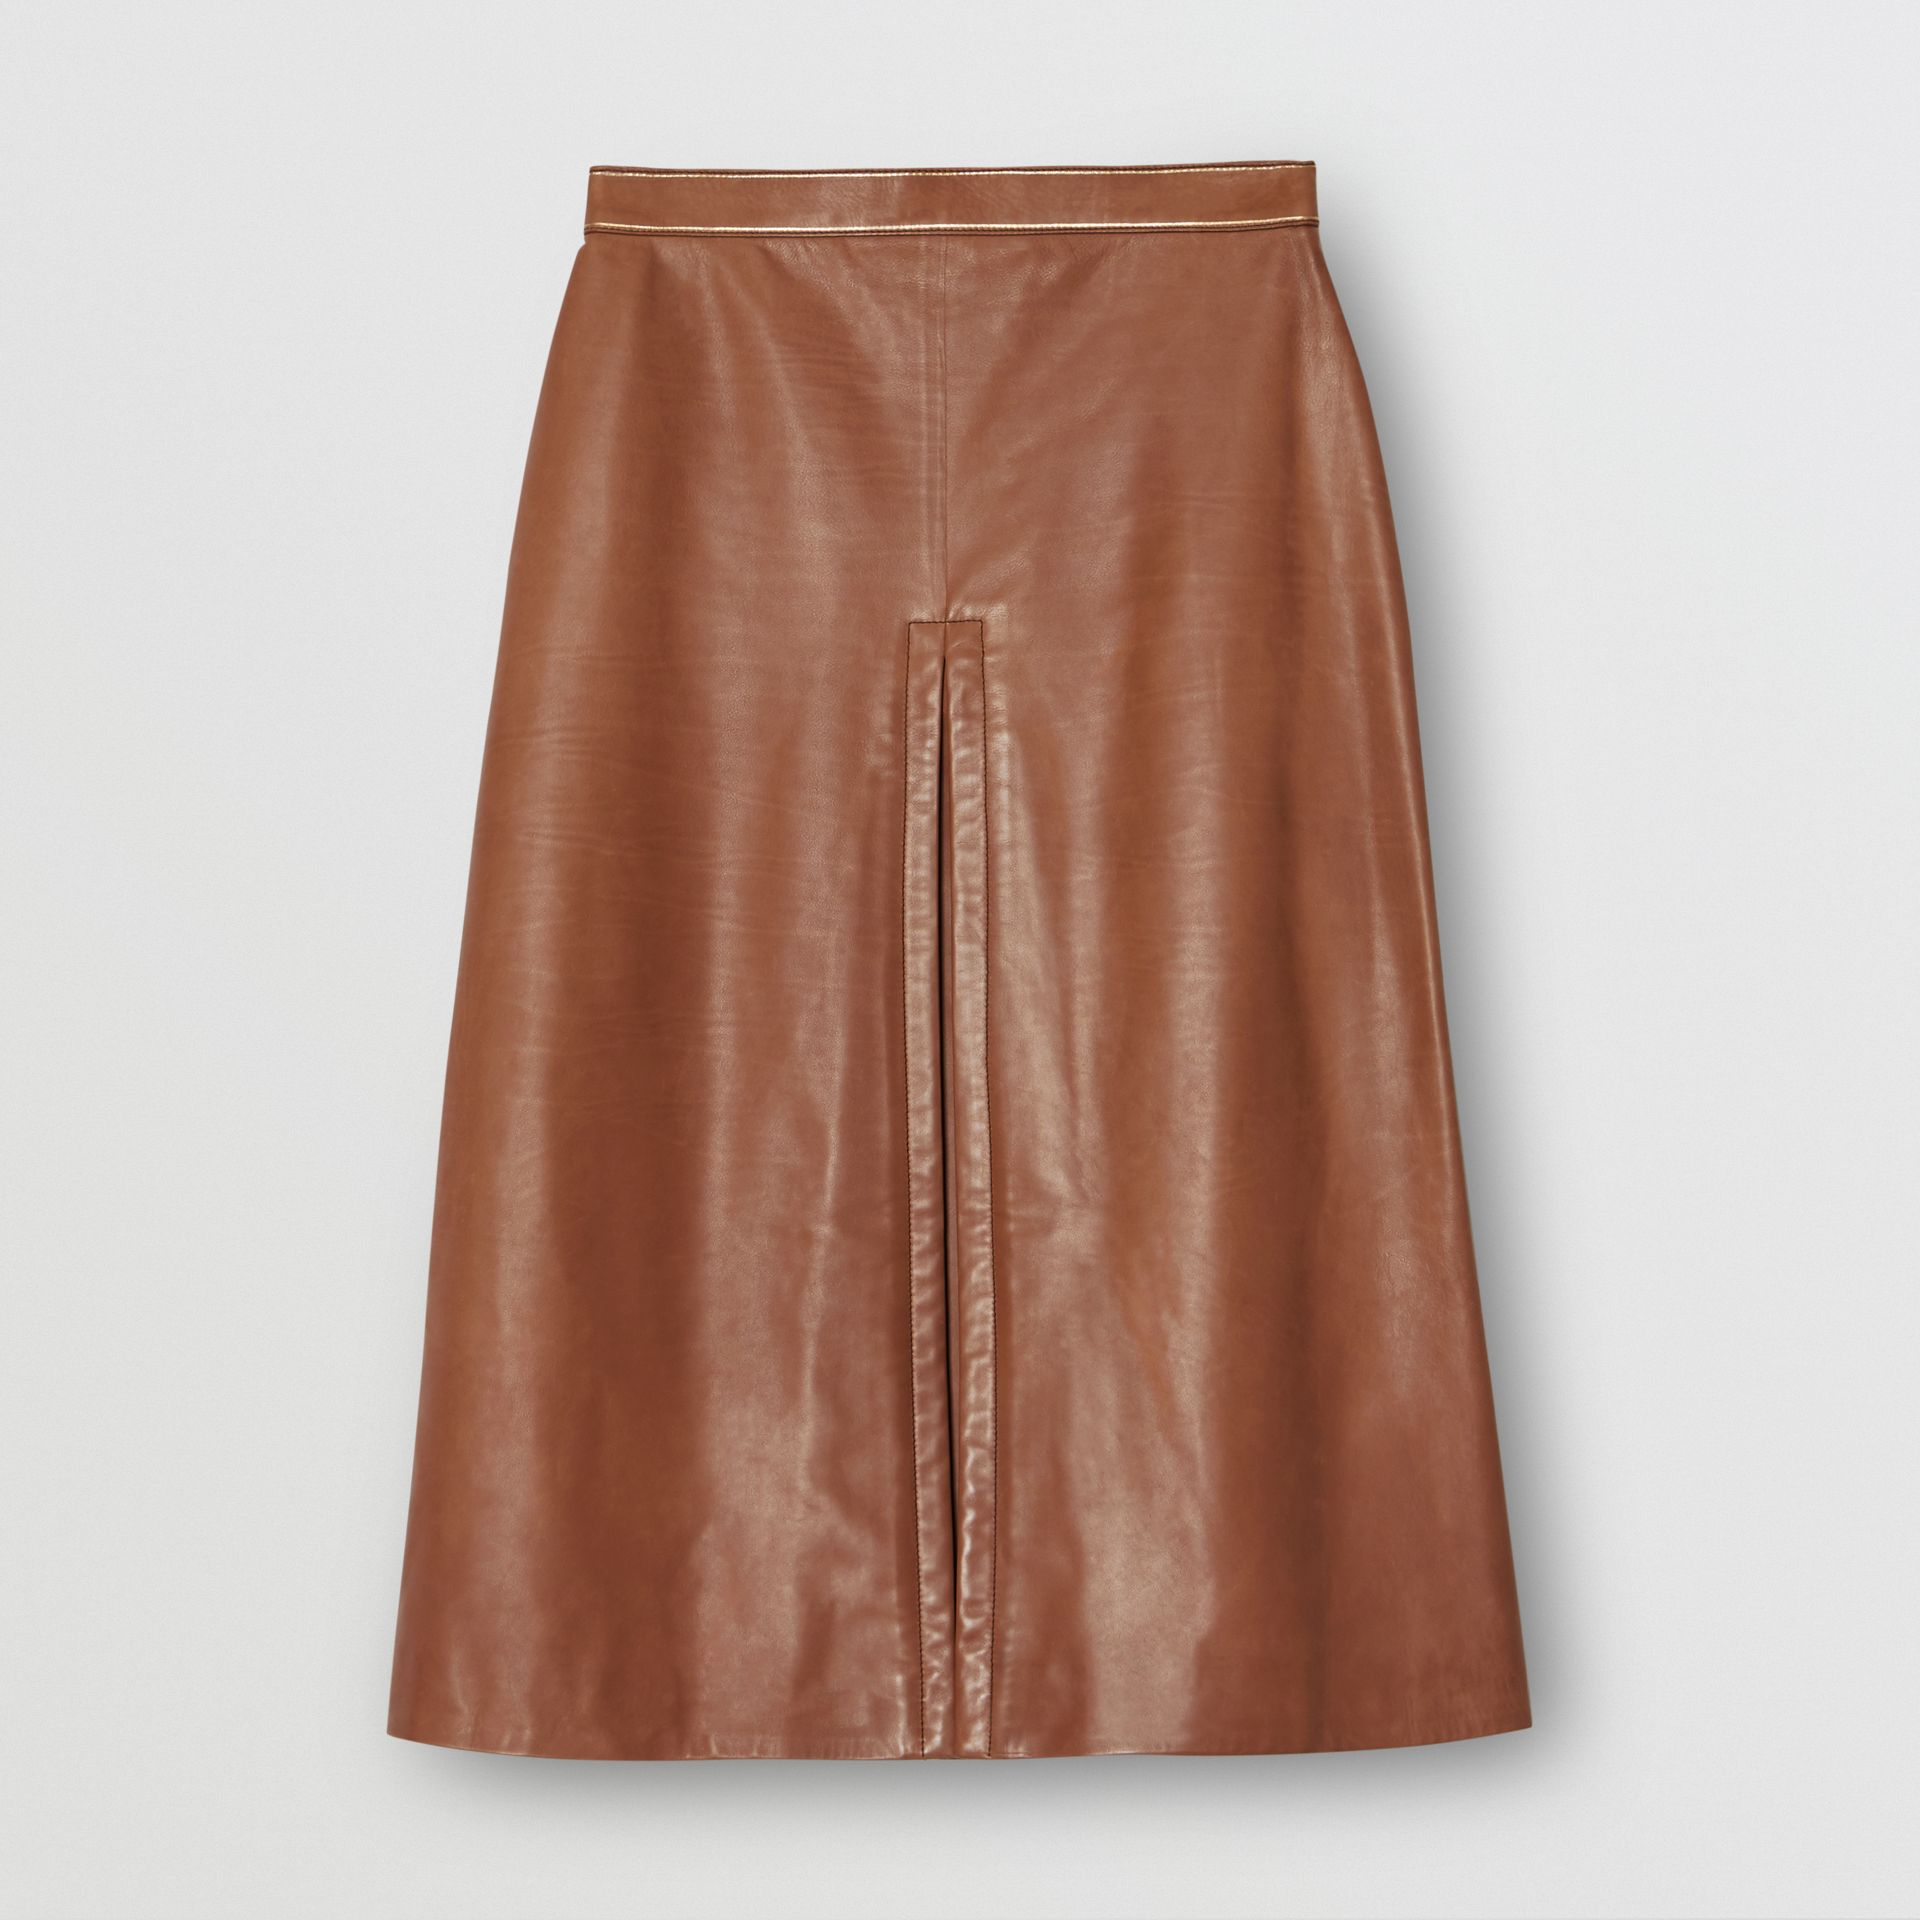 Box Pleat Detail Leather A-line Skirt in Flaxseed - Women | Burberry Australia - gallery image 3